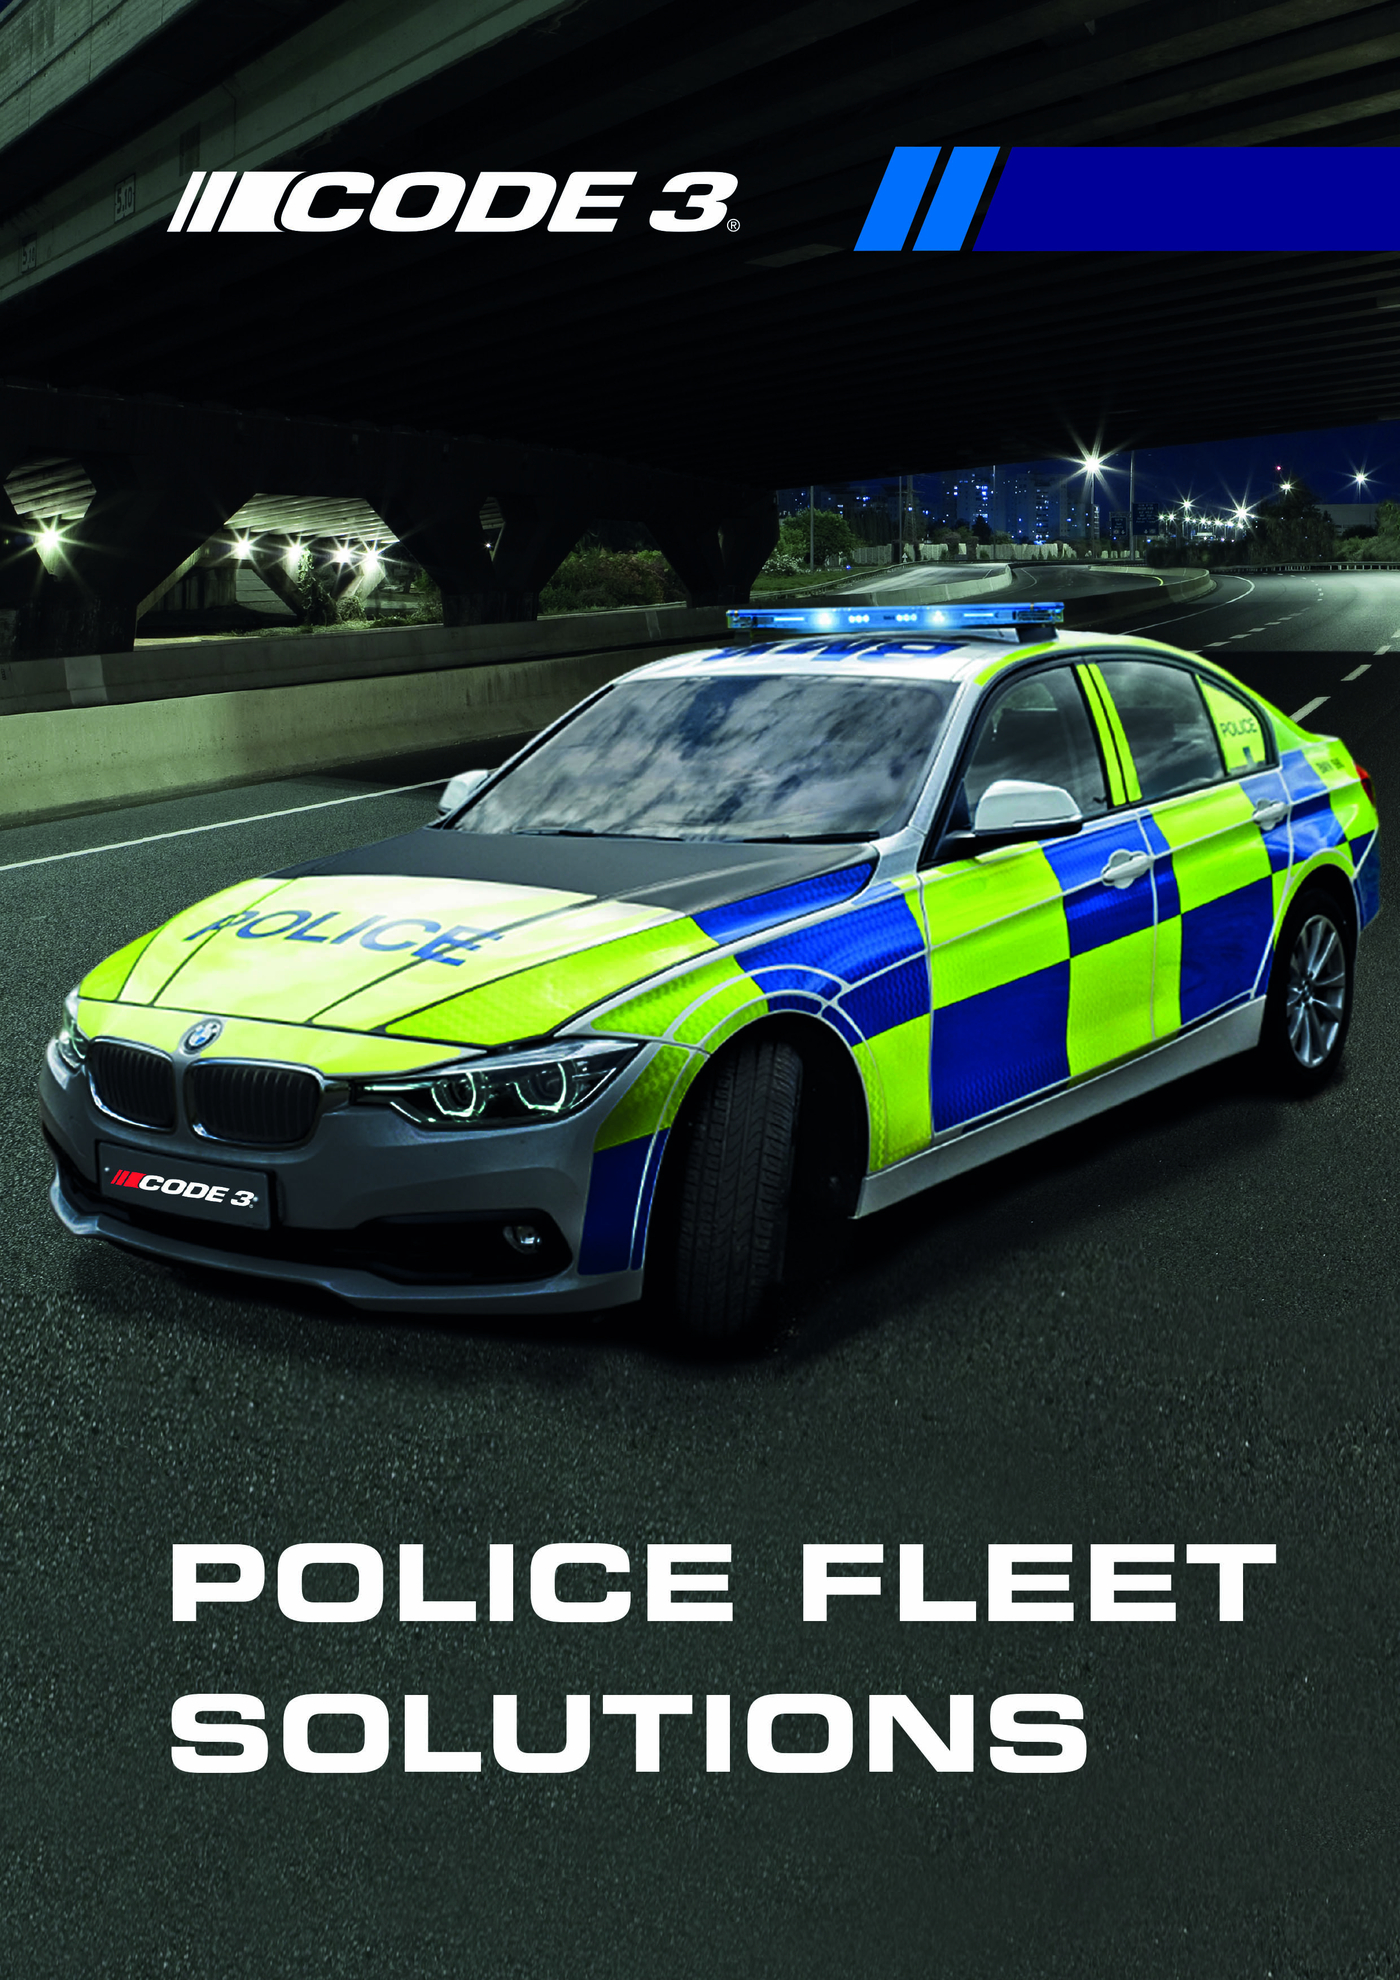 Premier Hazard Manufacture Supply And Install Emergency Vehicle Police Car Siren Circuit Solutions Brochure A4 1